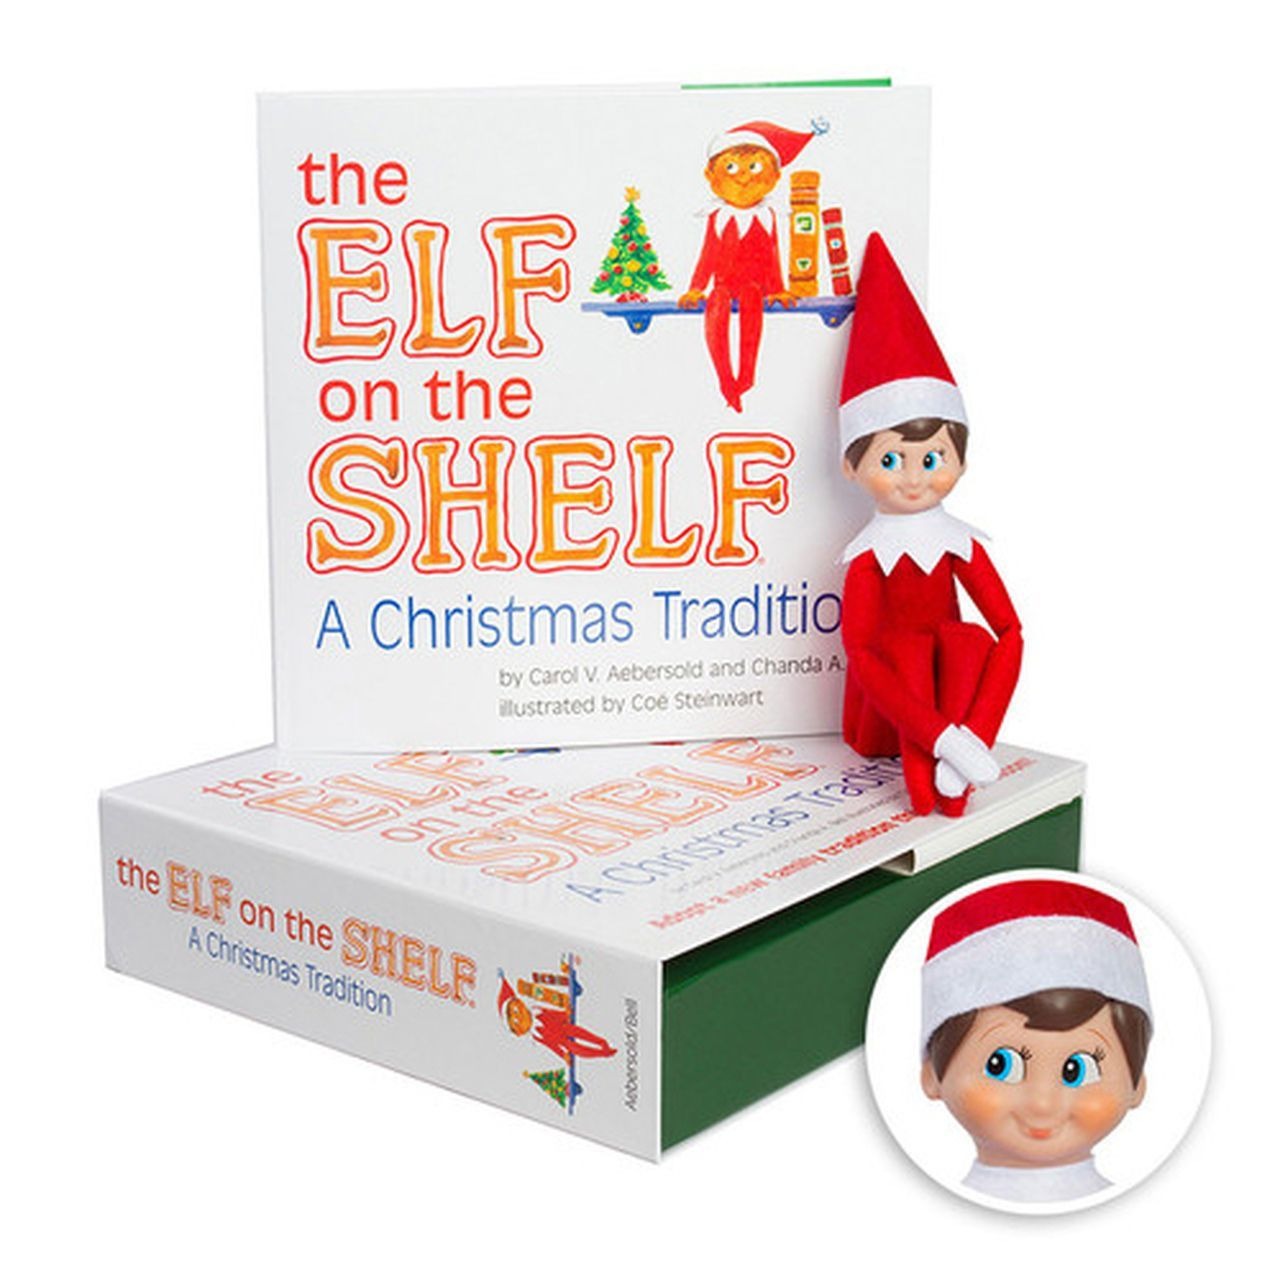 6c675437d10e37ab302cf2d2ded0ba35 - How To Get Elf On The Shelf Out Of Box